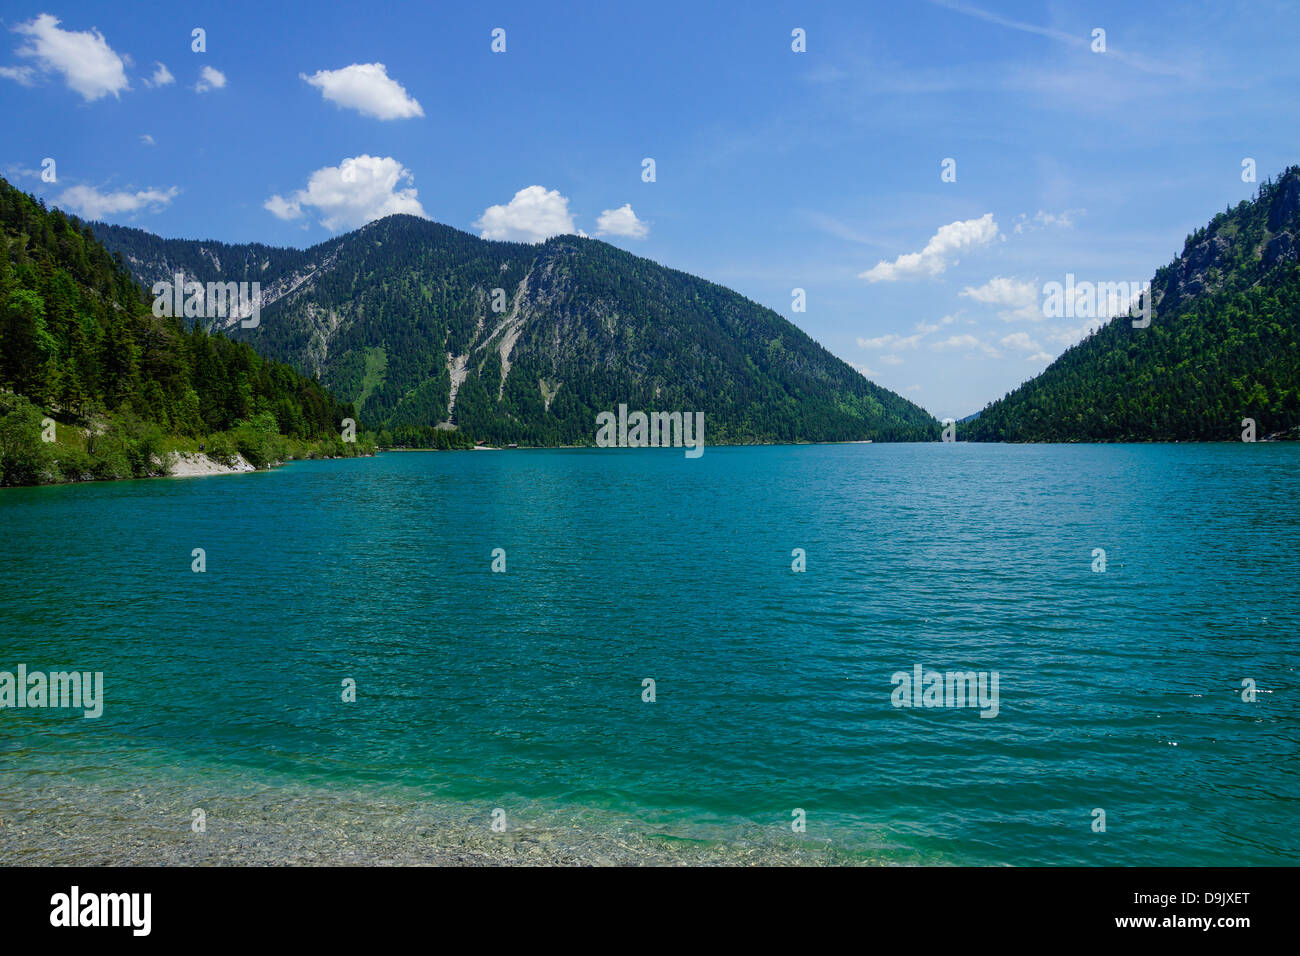 Plansee Lake, Ammergau Alps, Ammer Mountains - Stock Image